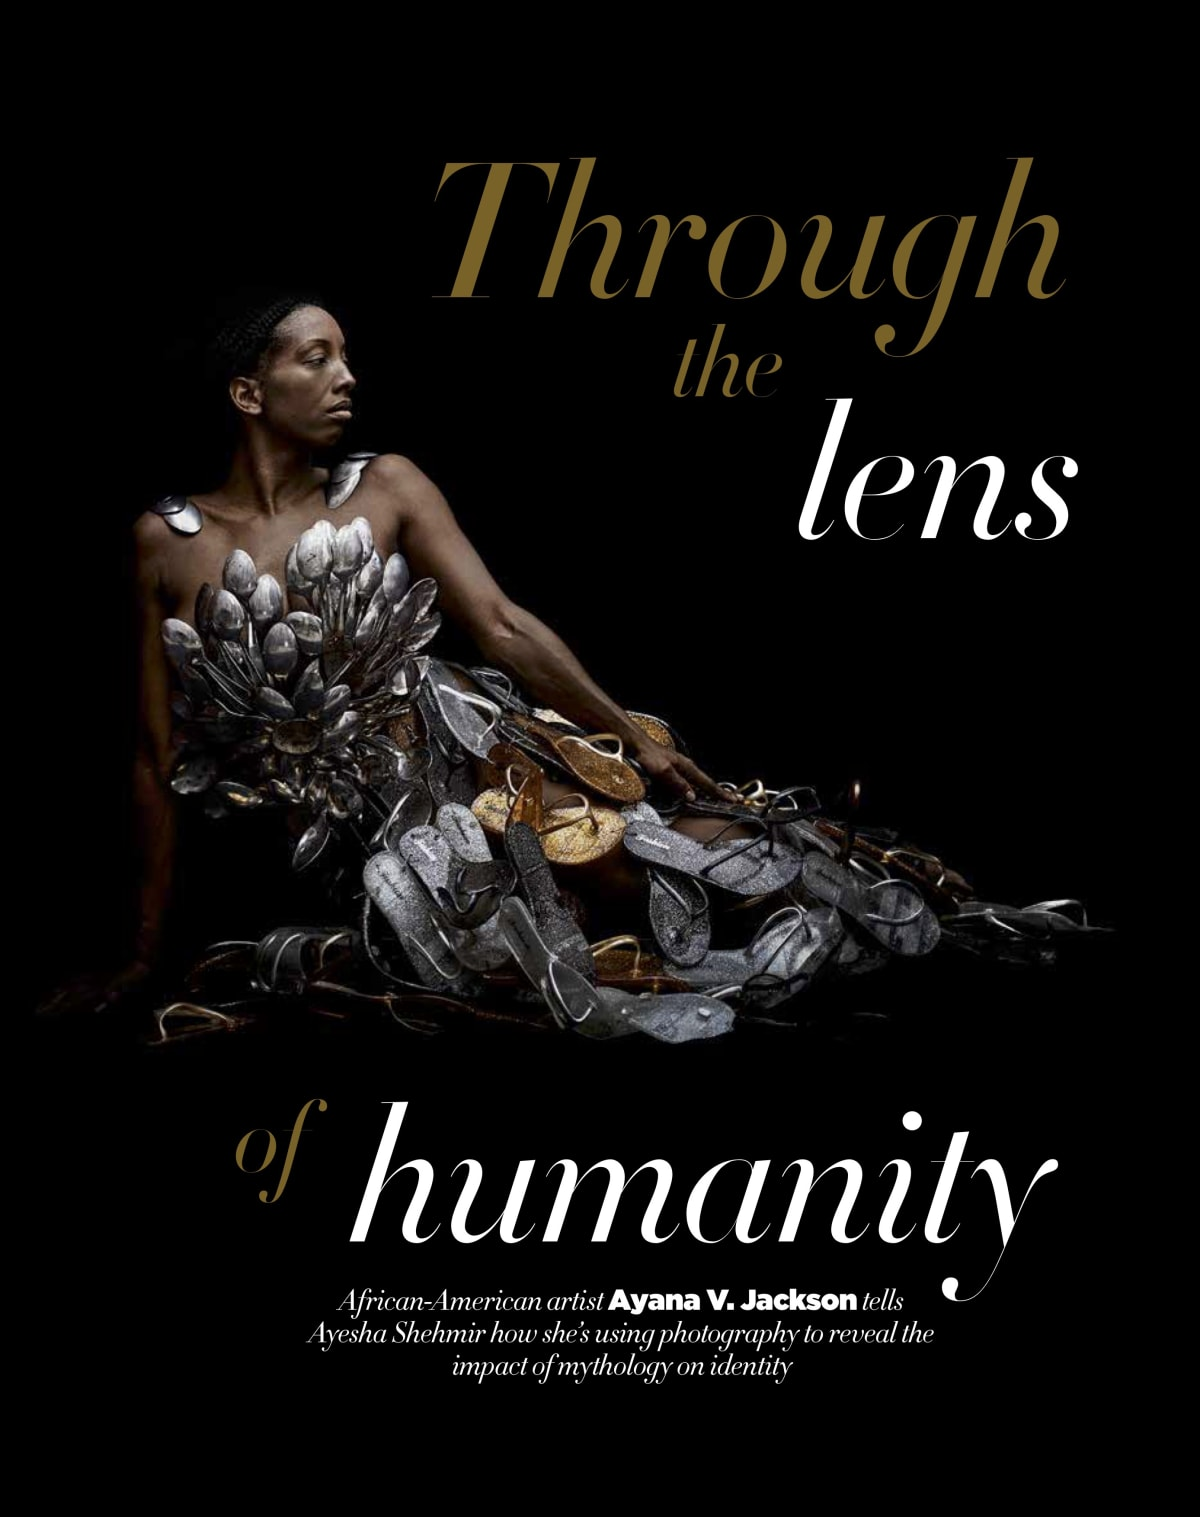 Through the lens of humanity